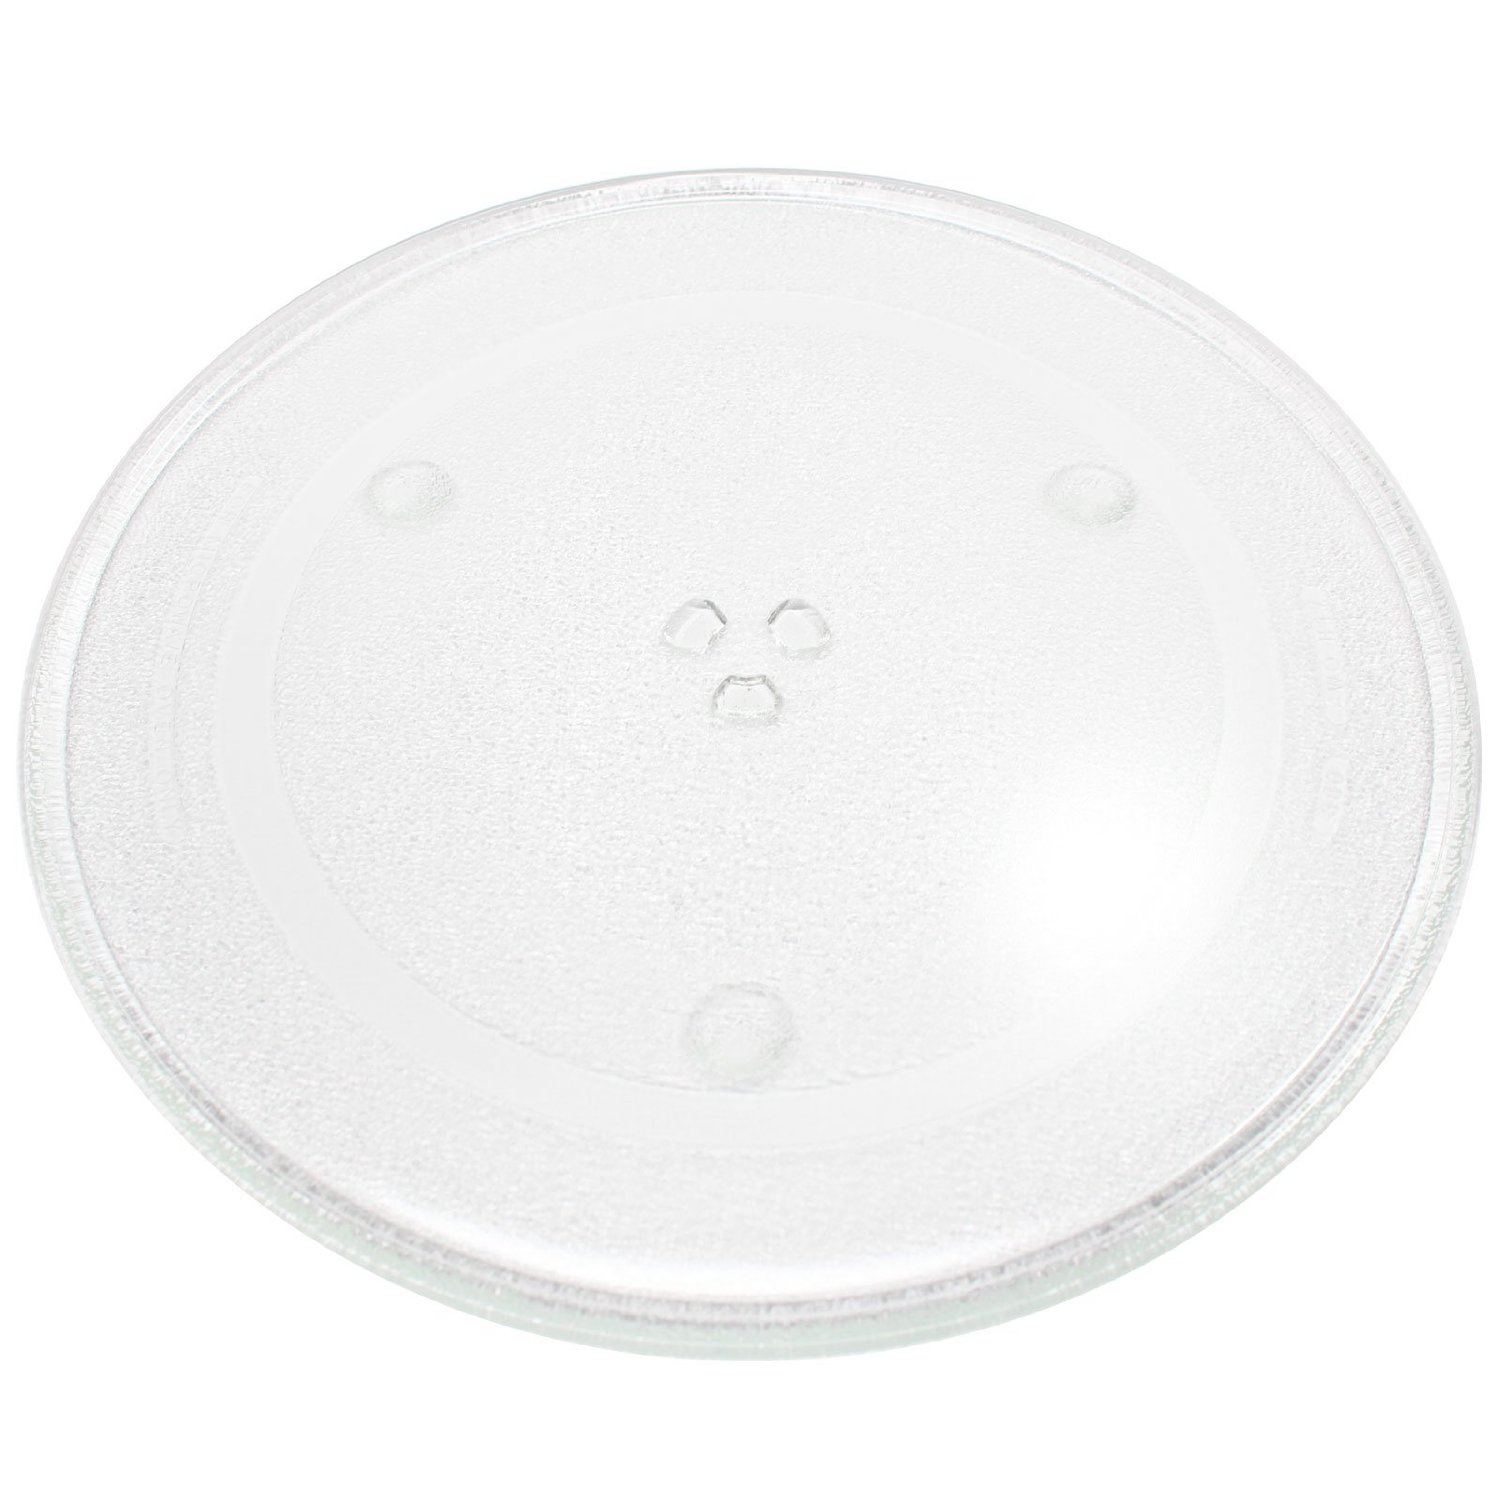 Get Quotations Replacement Panasonic Nnt785sf Microwave Gl Plate Compatible B06014w00ap Turntable Tray 14